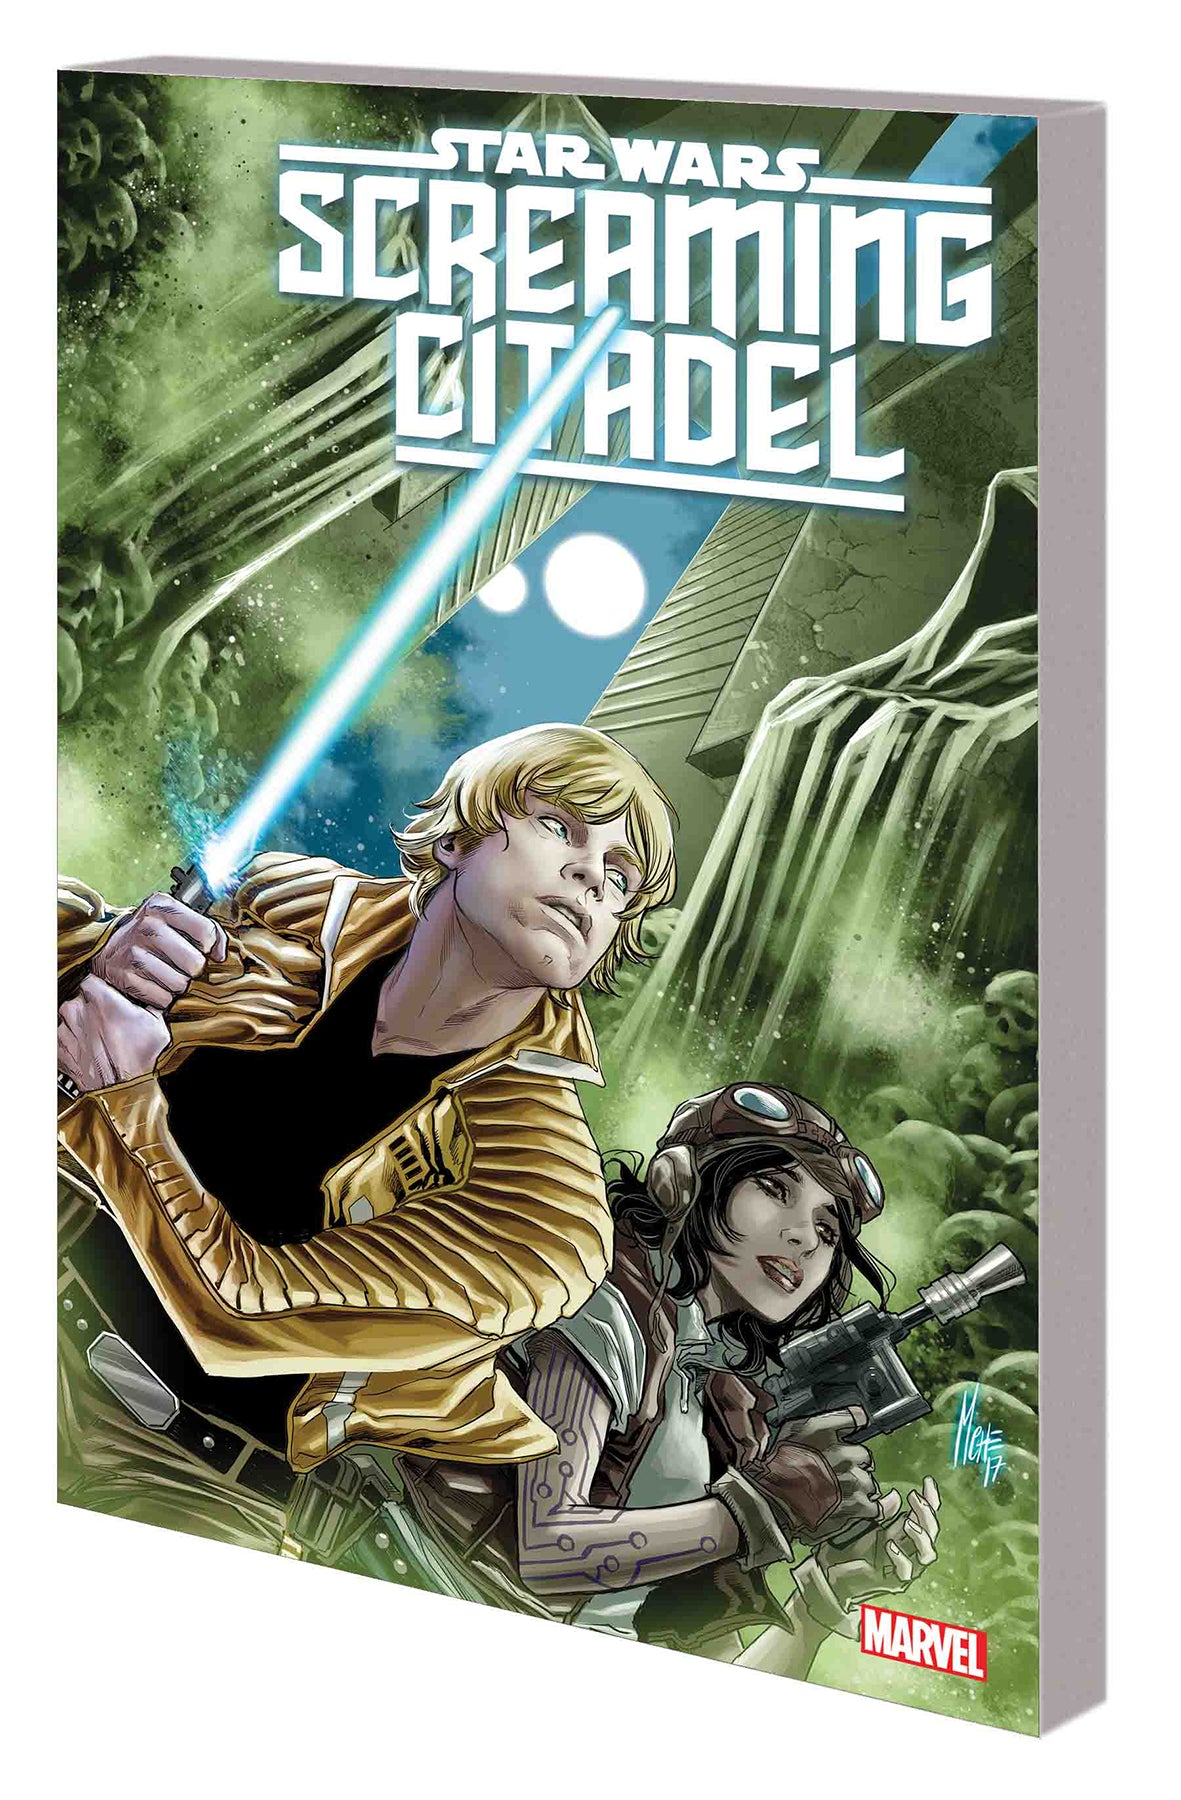 STAR WARS SCREAMING CITADEL TP | Game Master's Emporium (The New GME)